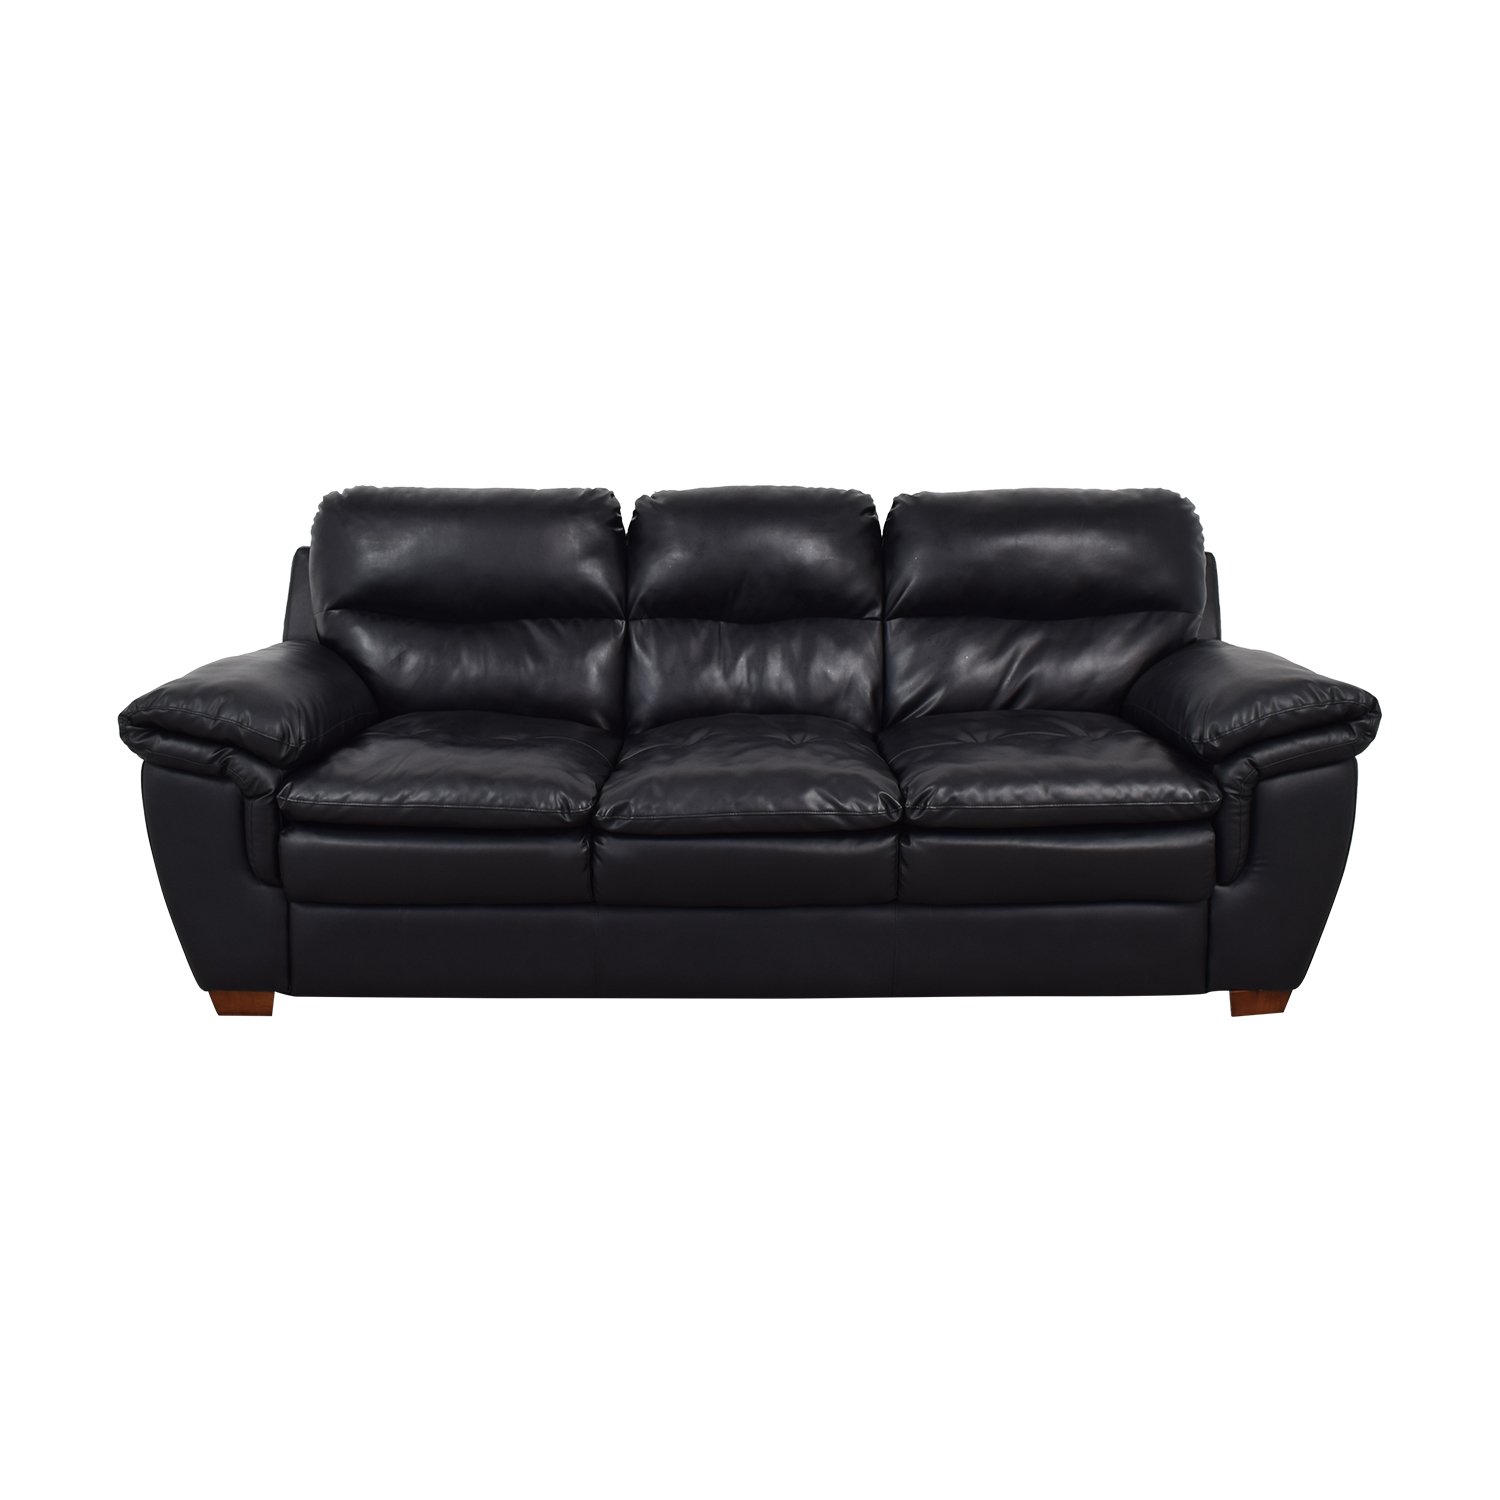 40 off ashley furniture ashley furniture three cushion brown